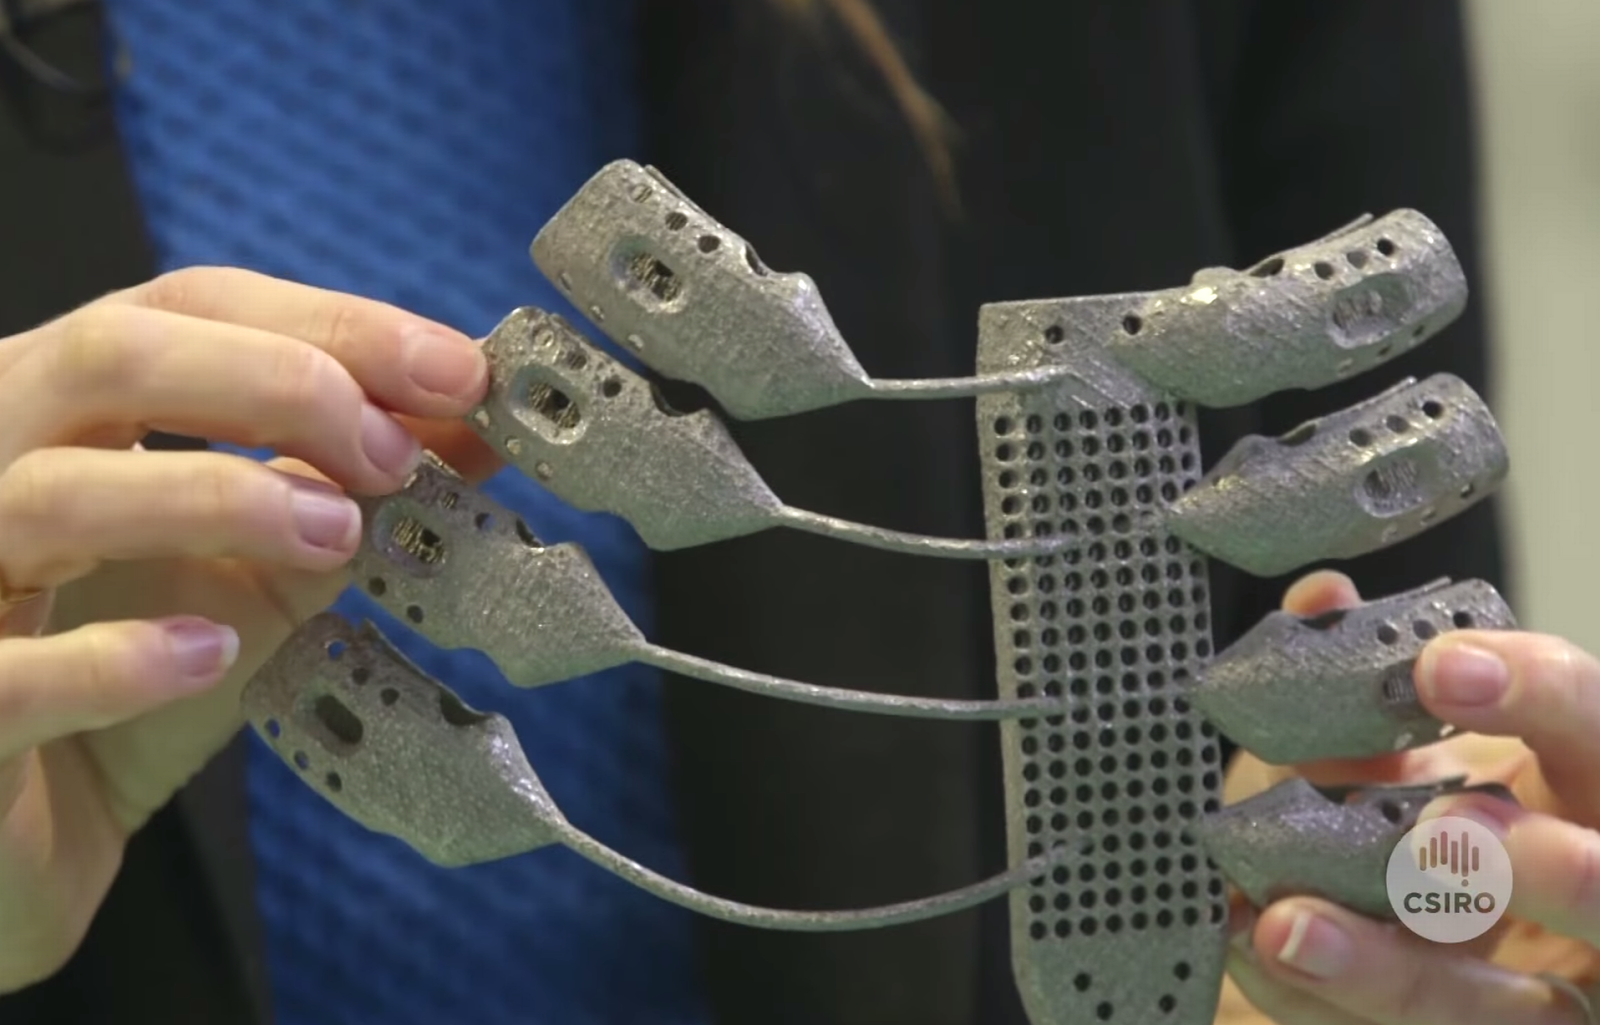 The Impact of 3D Printing on Healthcare